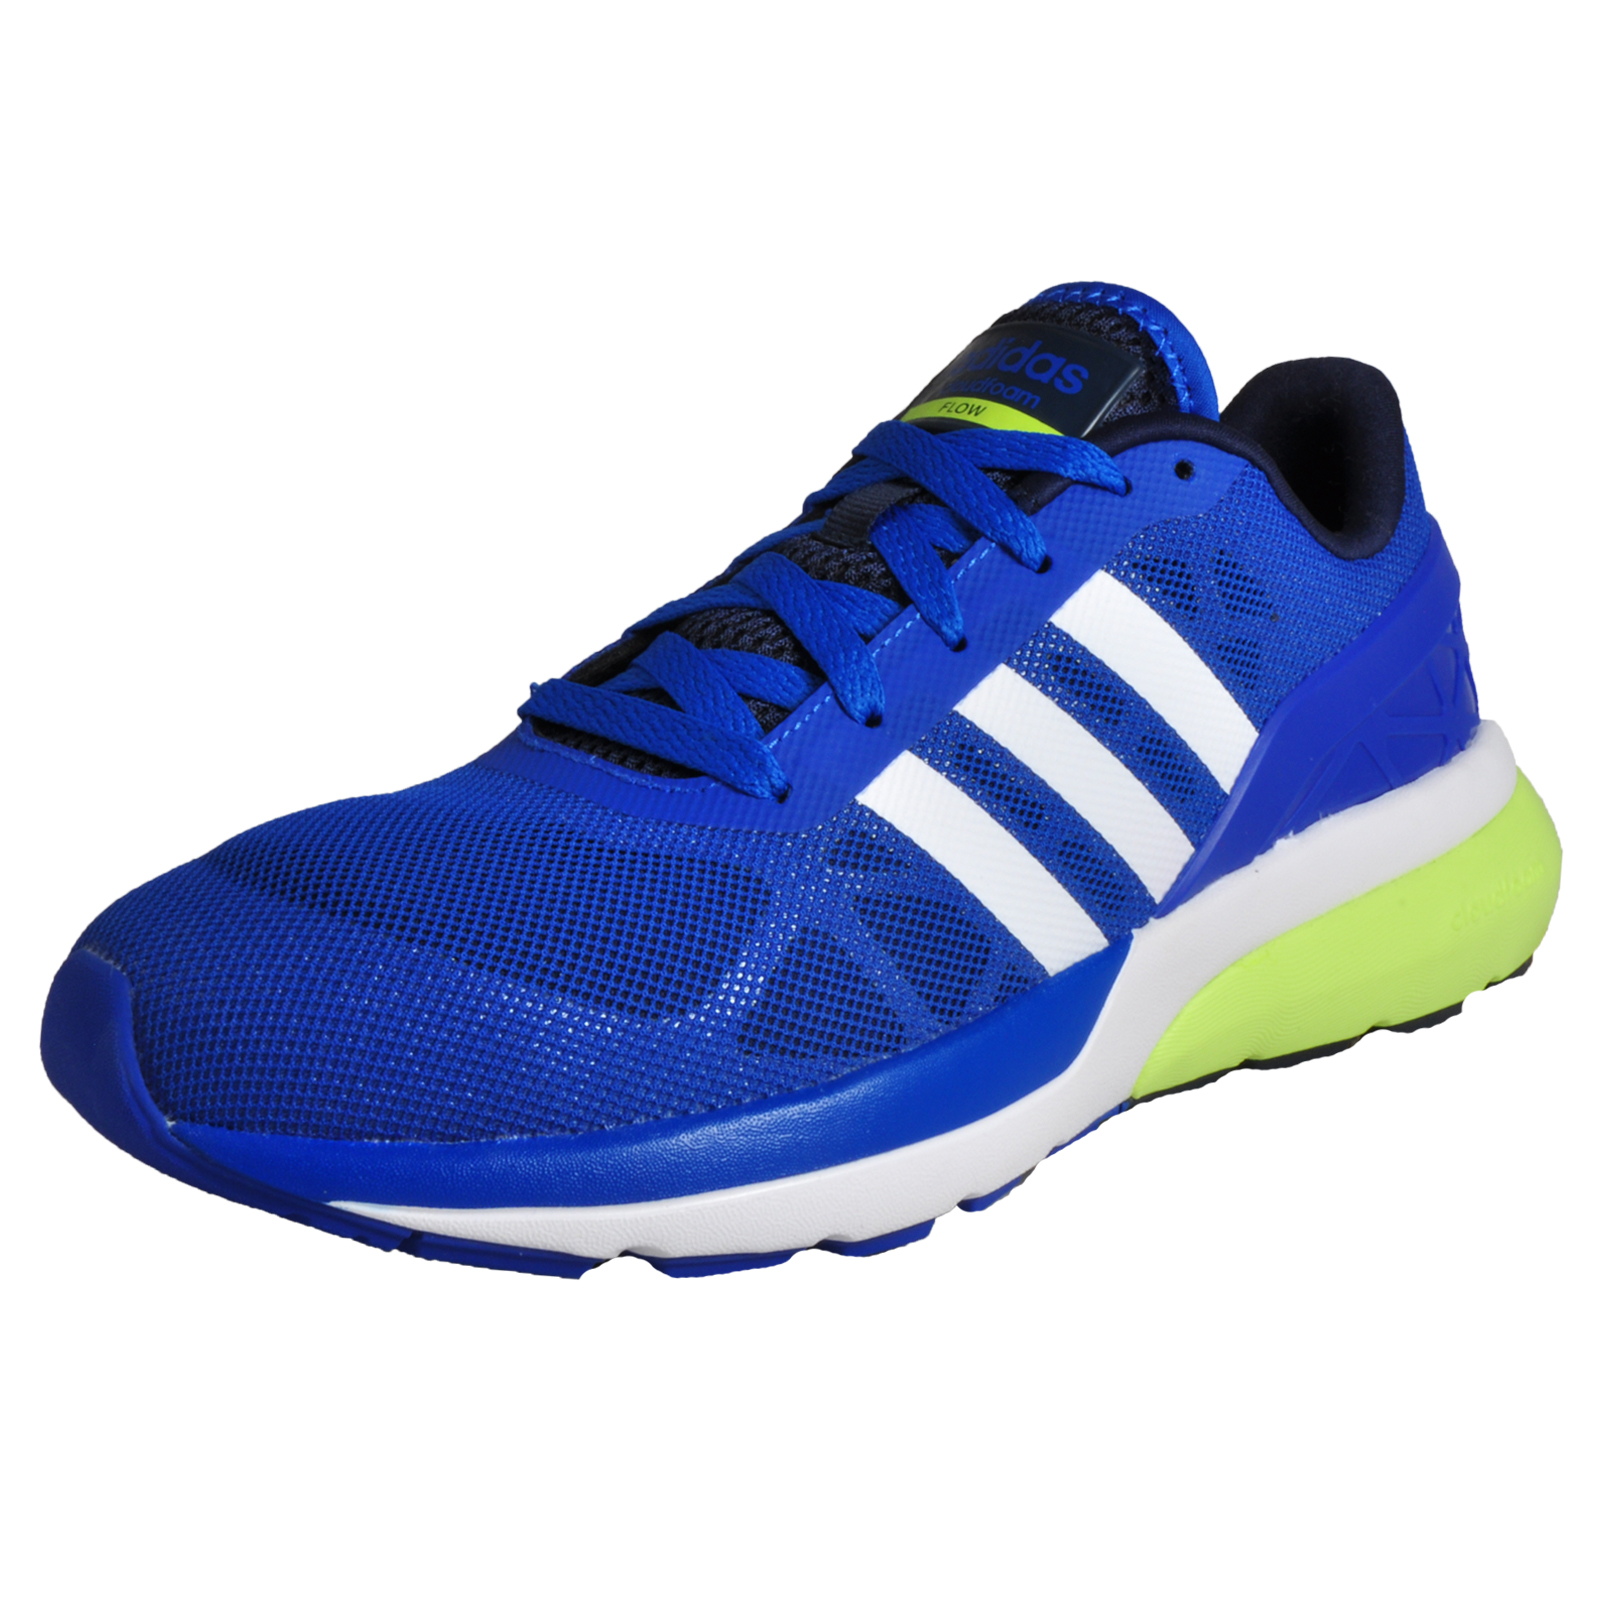 adidas neo men's cloudfoam flow